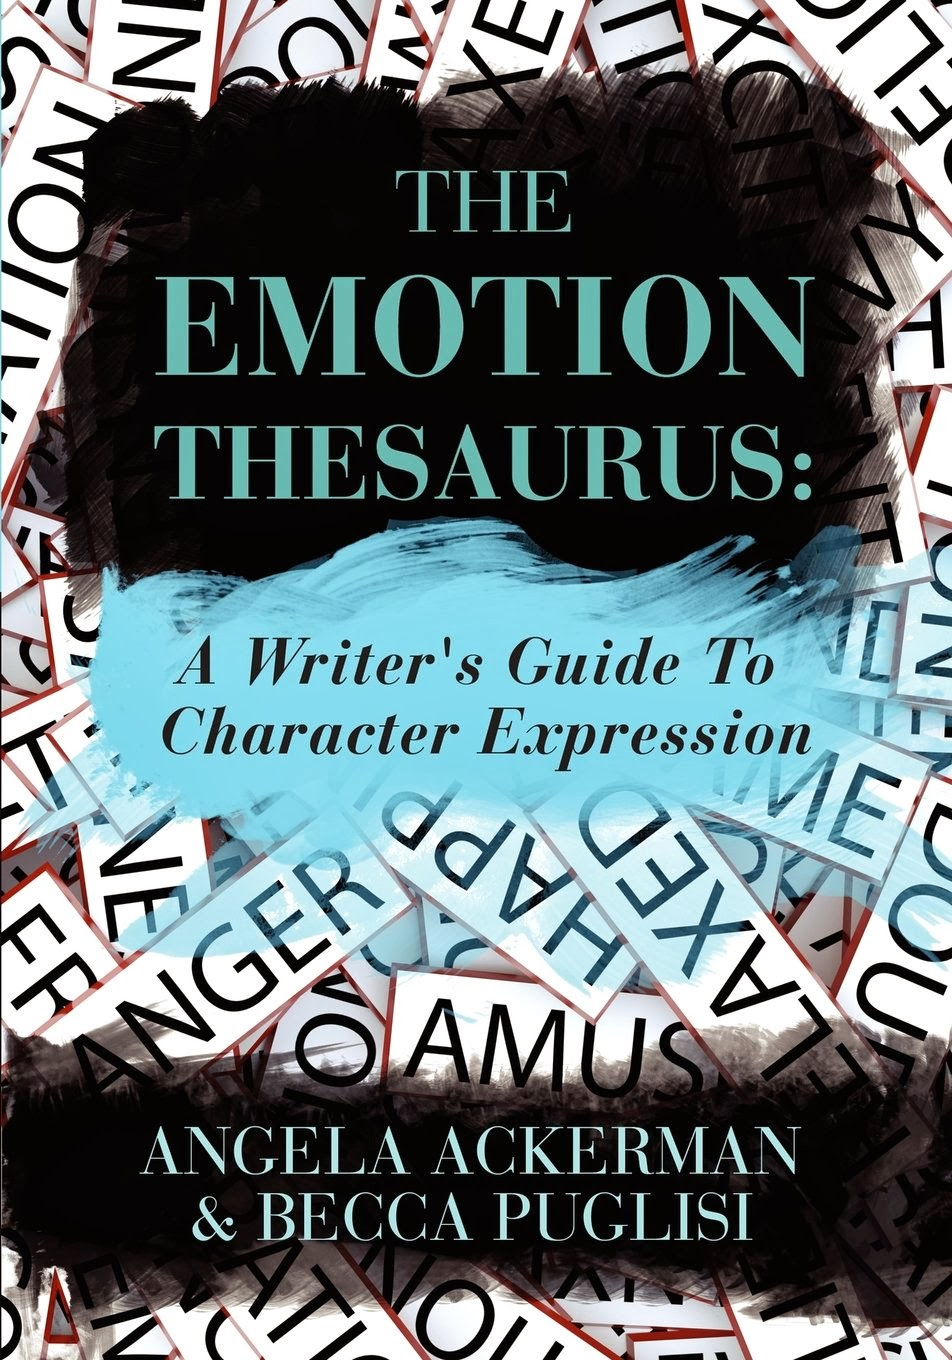 http://www.amazon.com/Emotion-Thesaurus-Writers-Character-Expression-ebook/dp/B00822WM2M/ref=sr_1_1?ie=UTF8&qid=1391737717&sr=8-1&keywords=the+emotion+thesaurus+a+writer%27s+guide+to+character+expression